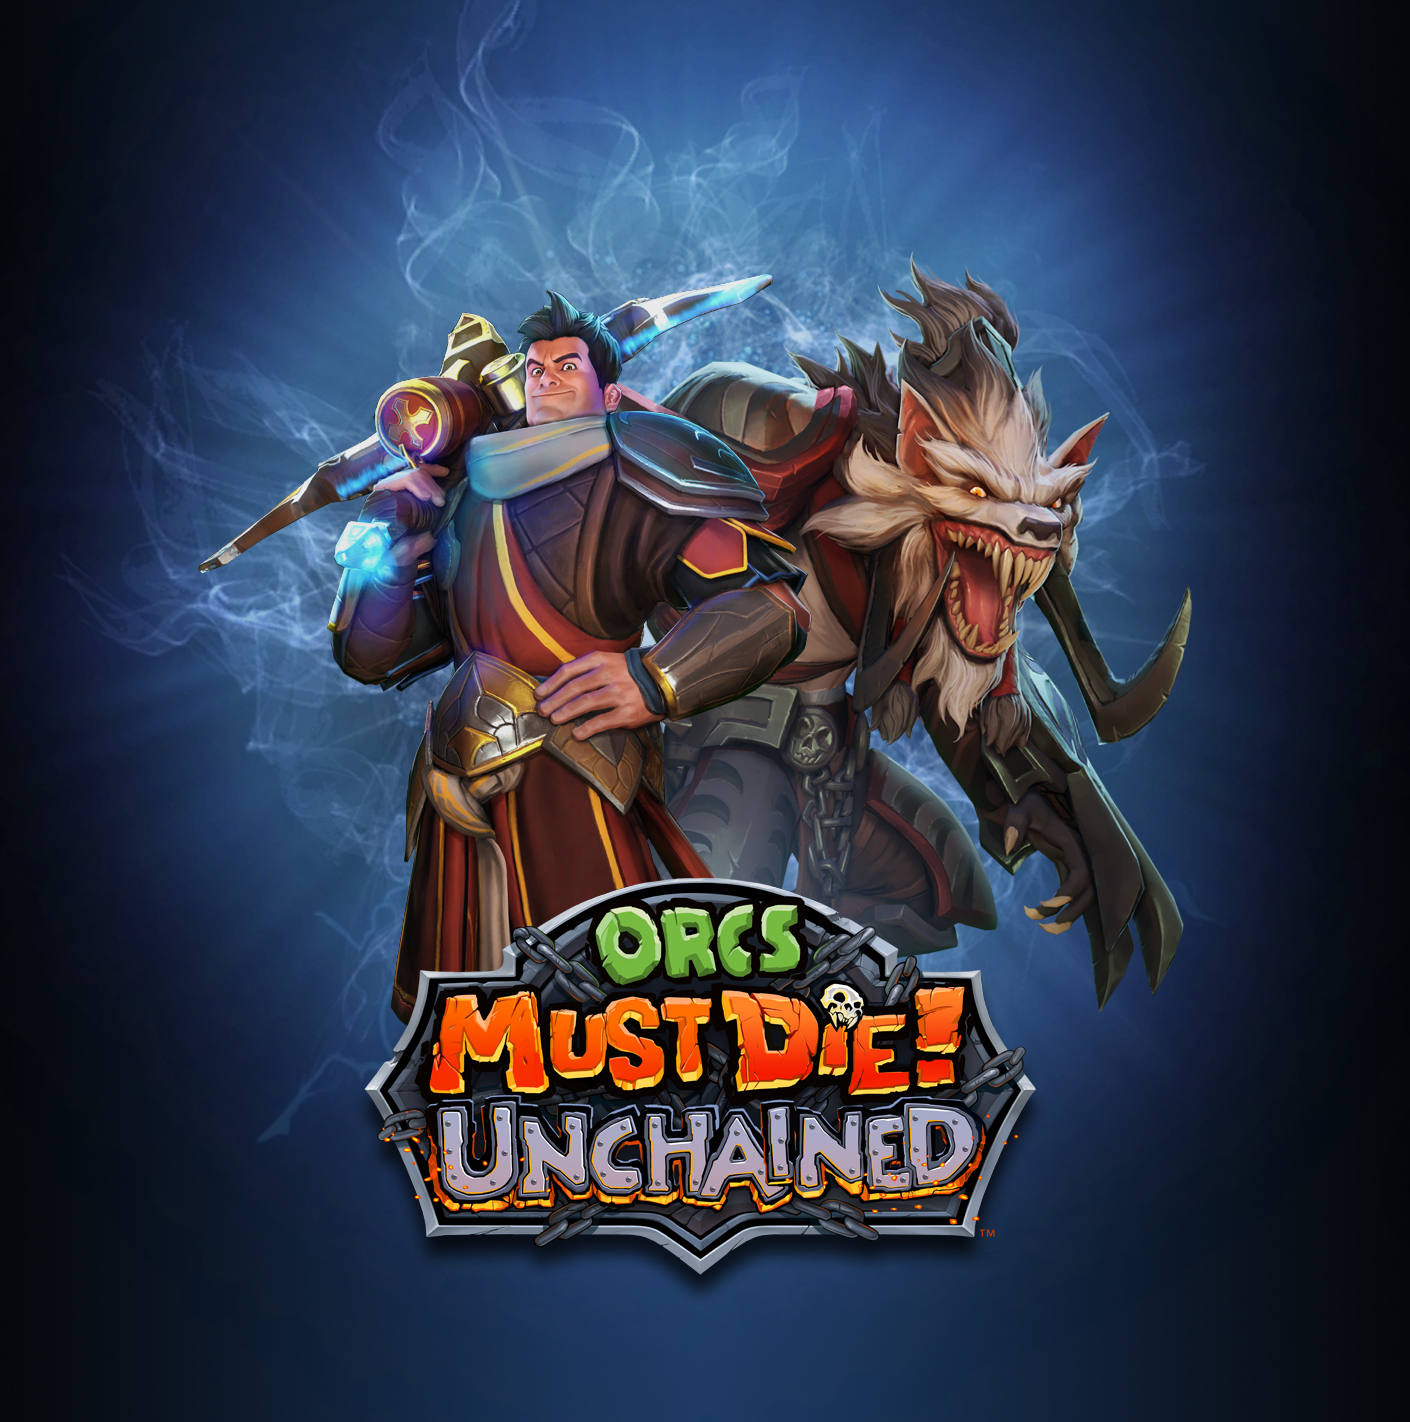 [PAX East 2014] Orcs Must Die! Unchained Preview: Always Evolving